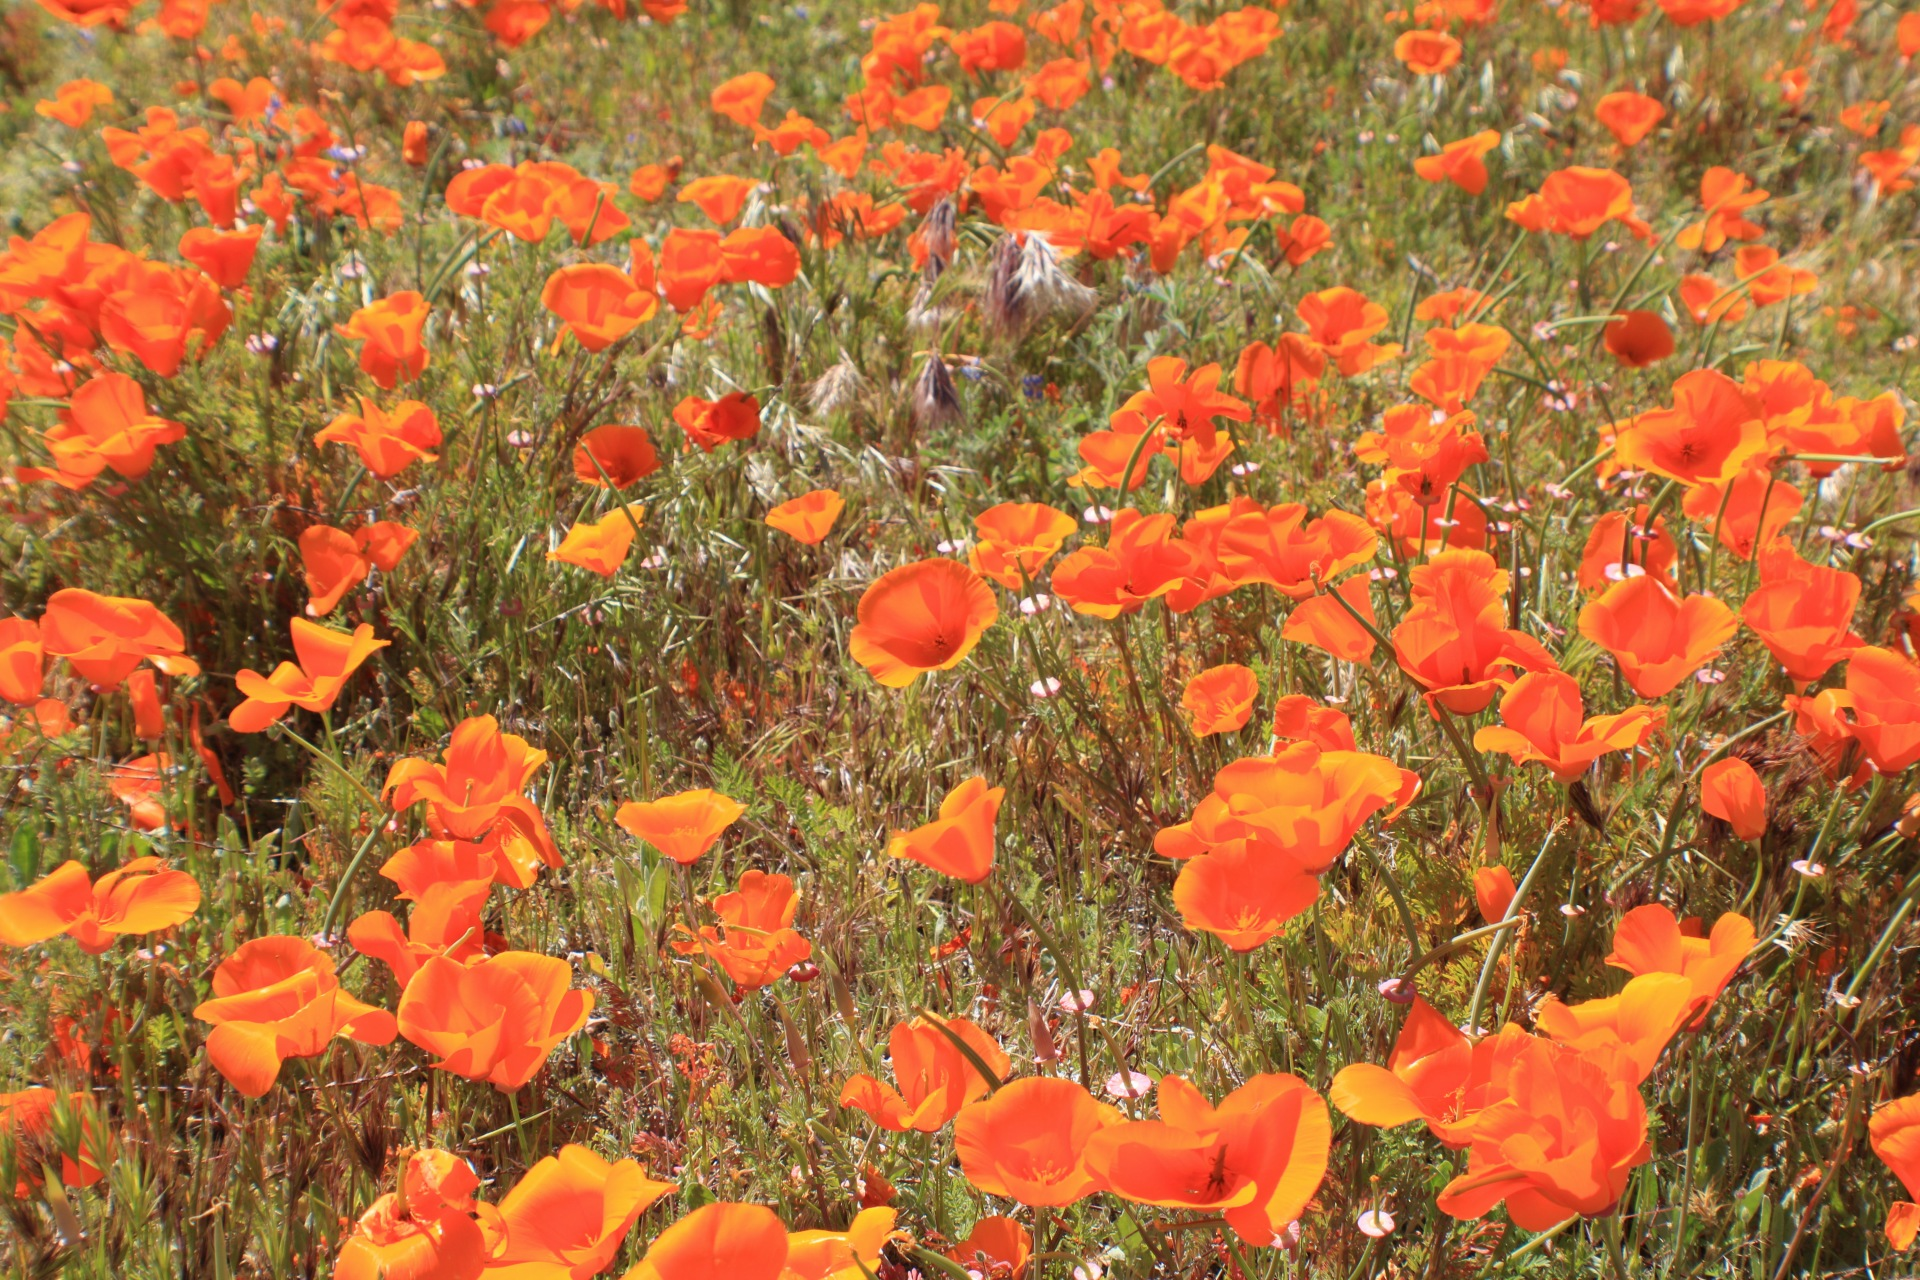 The California Poppies